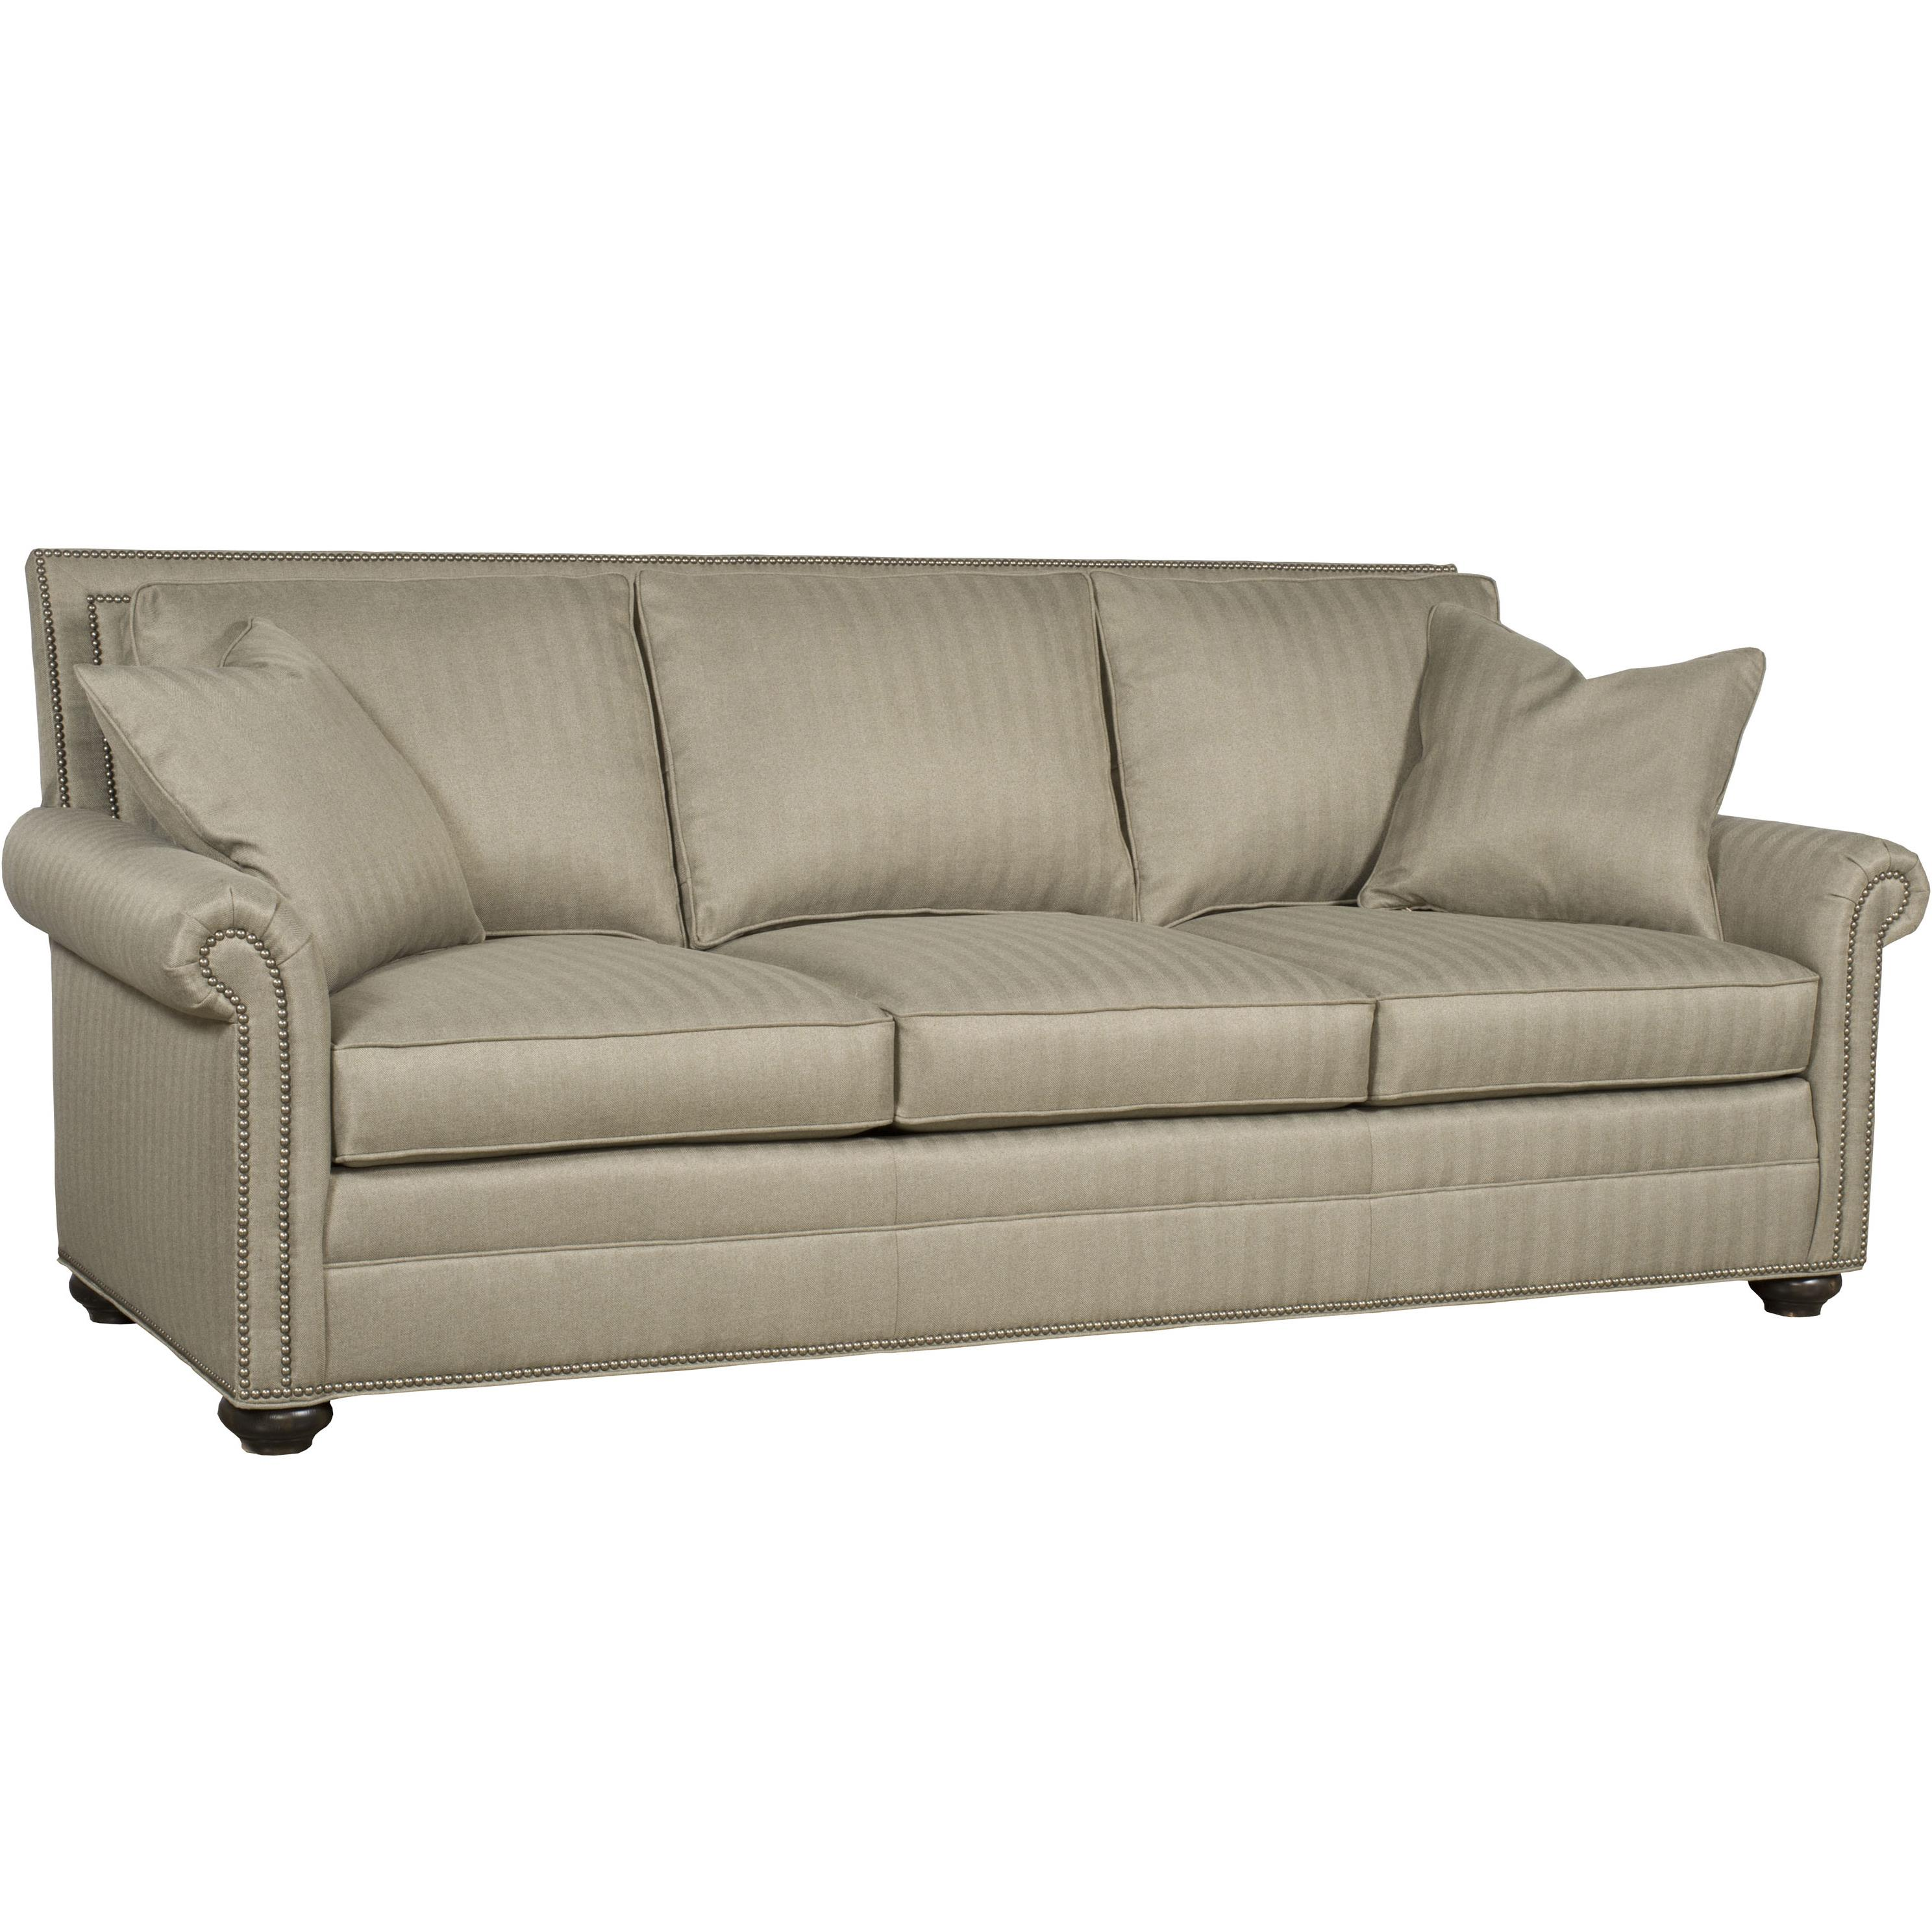 traditional sofa sleeper thomasville leather prices vanguard furniture simpson with